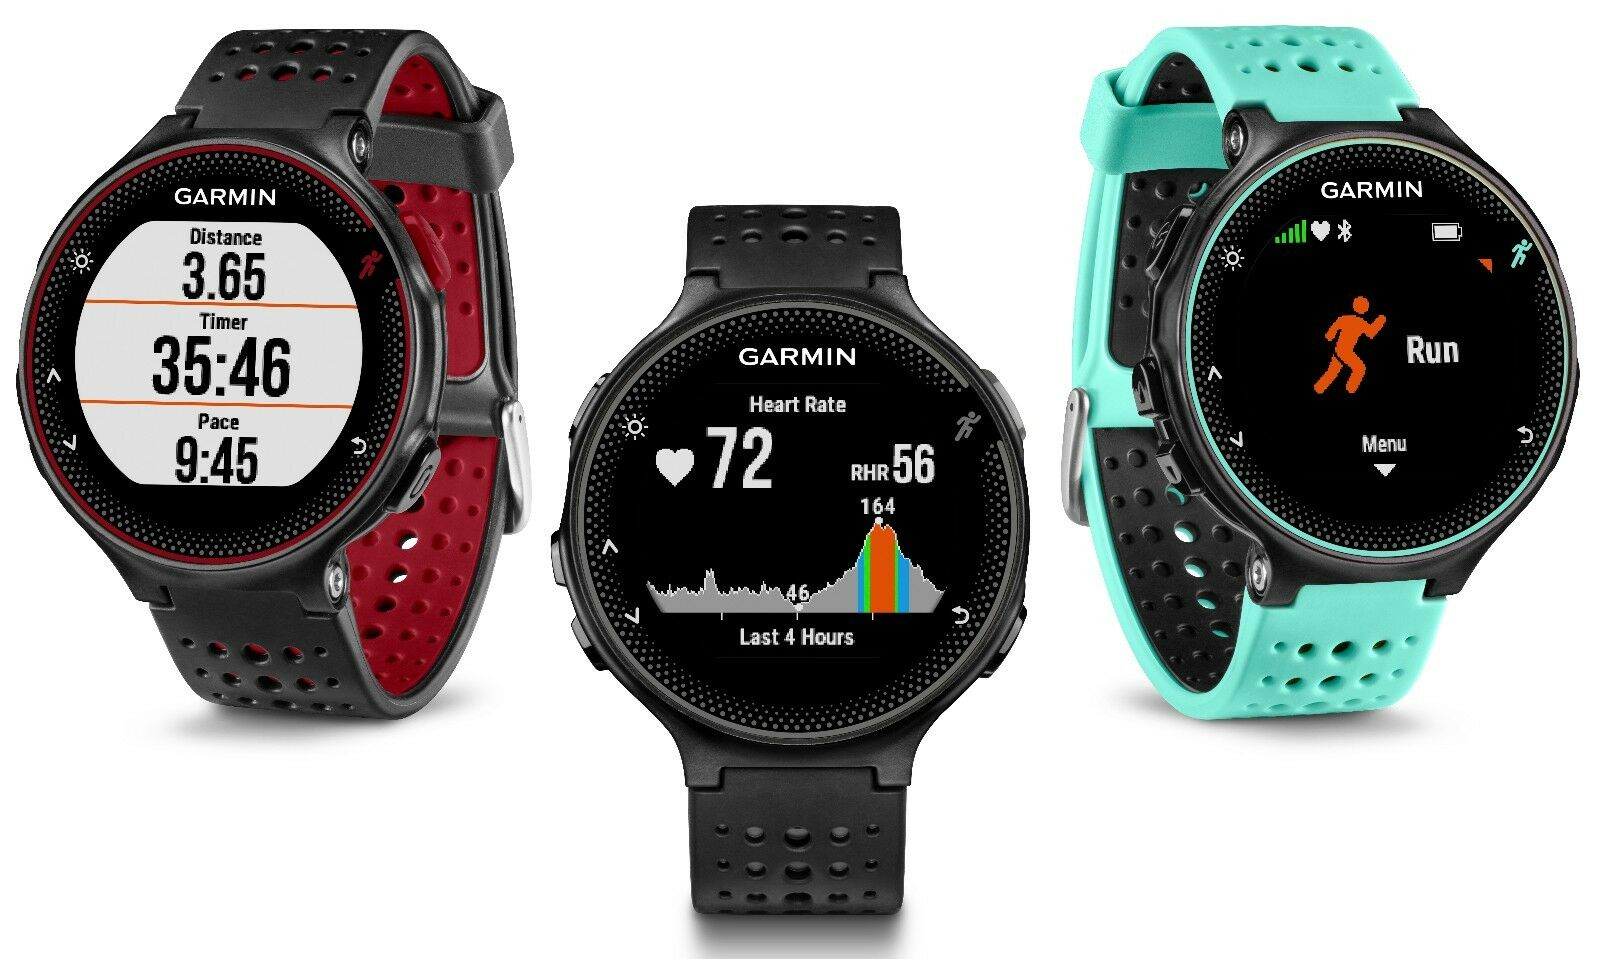 Garmin Forerunner 235 010-03717 GPS Running Watch with Wrist-based Heart Rate